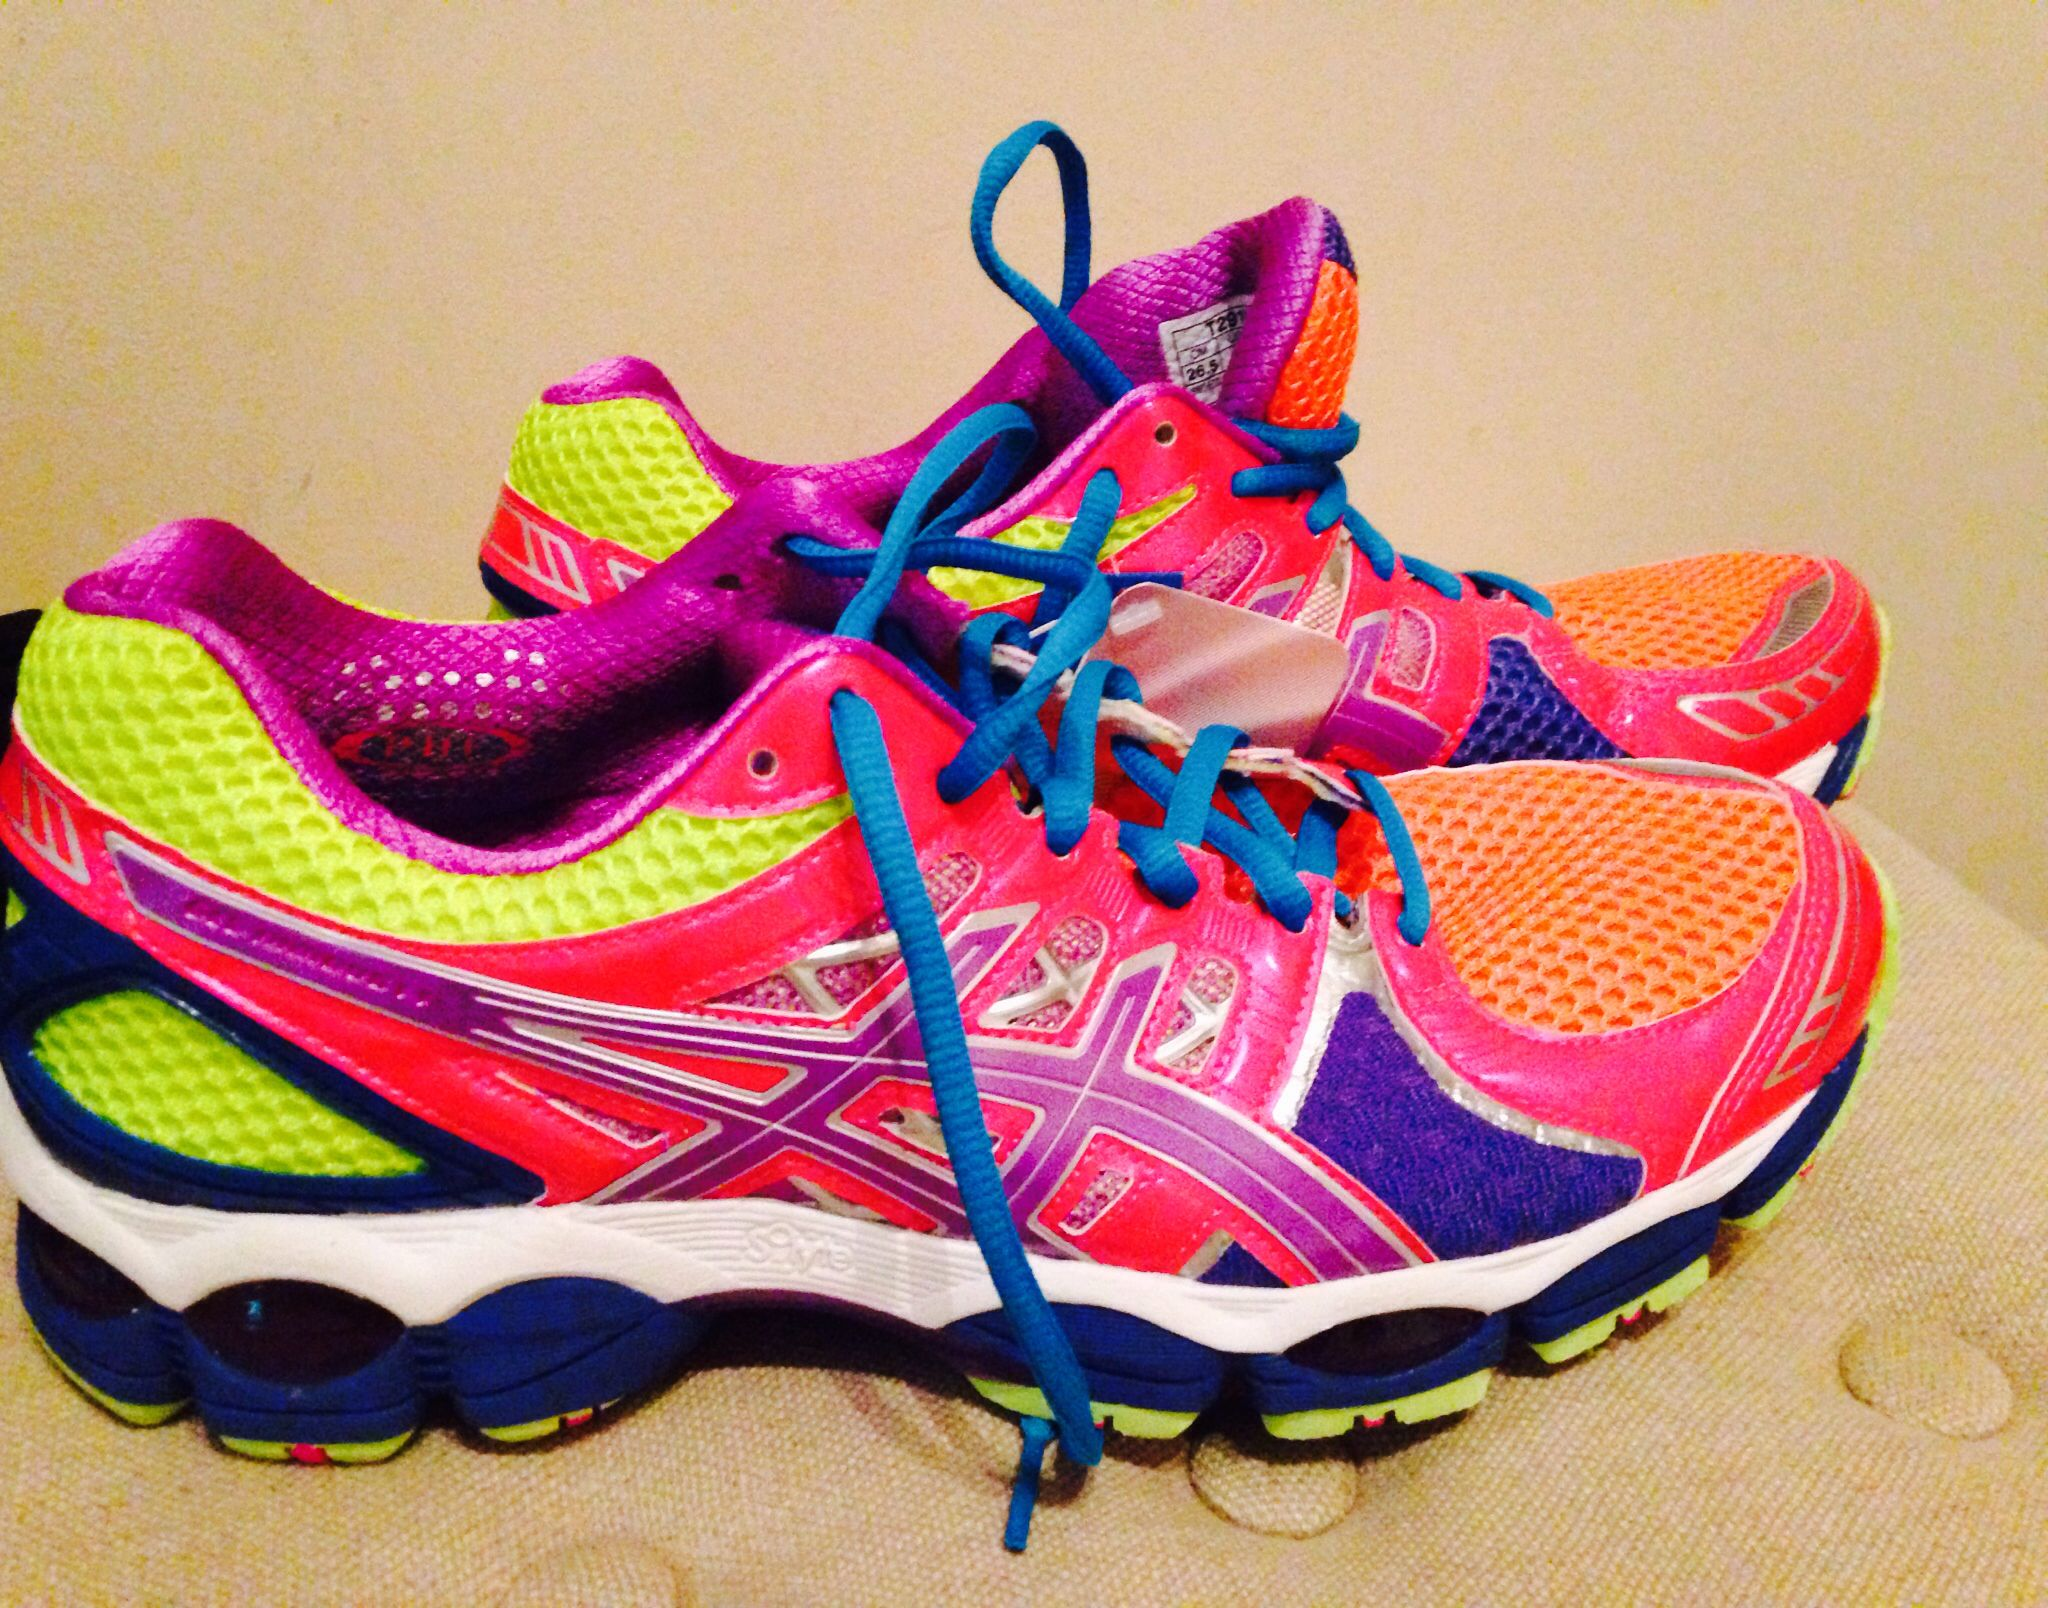 Finally flashy runningshoes